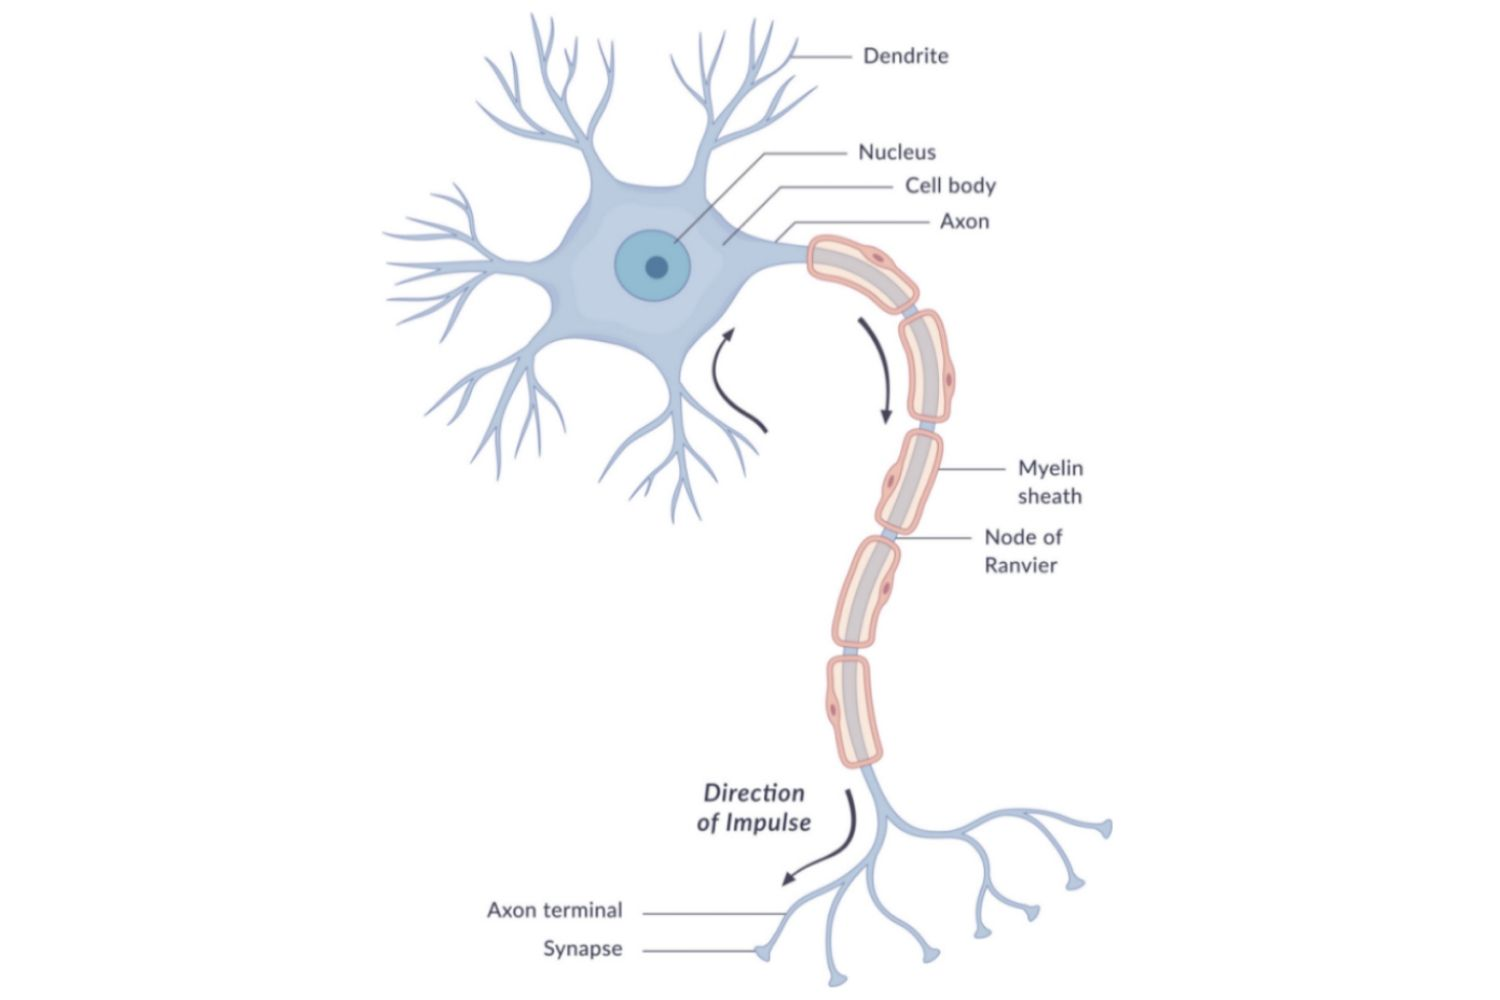 Neuron Anatomy Nerve Impulses And Classifications